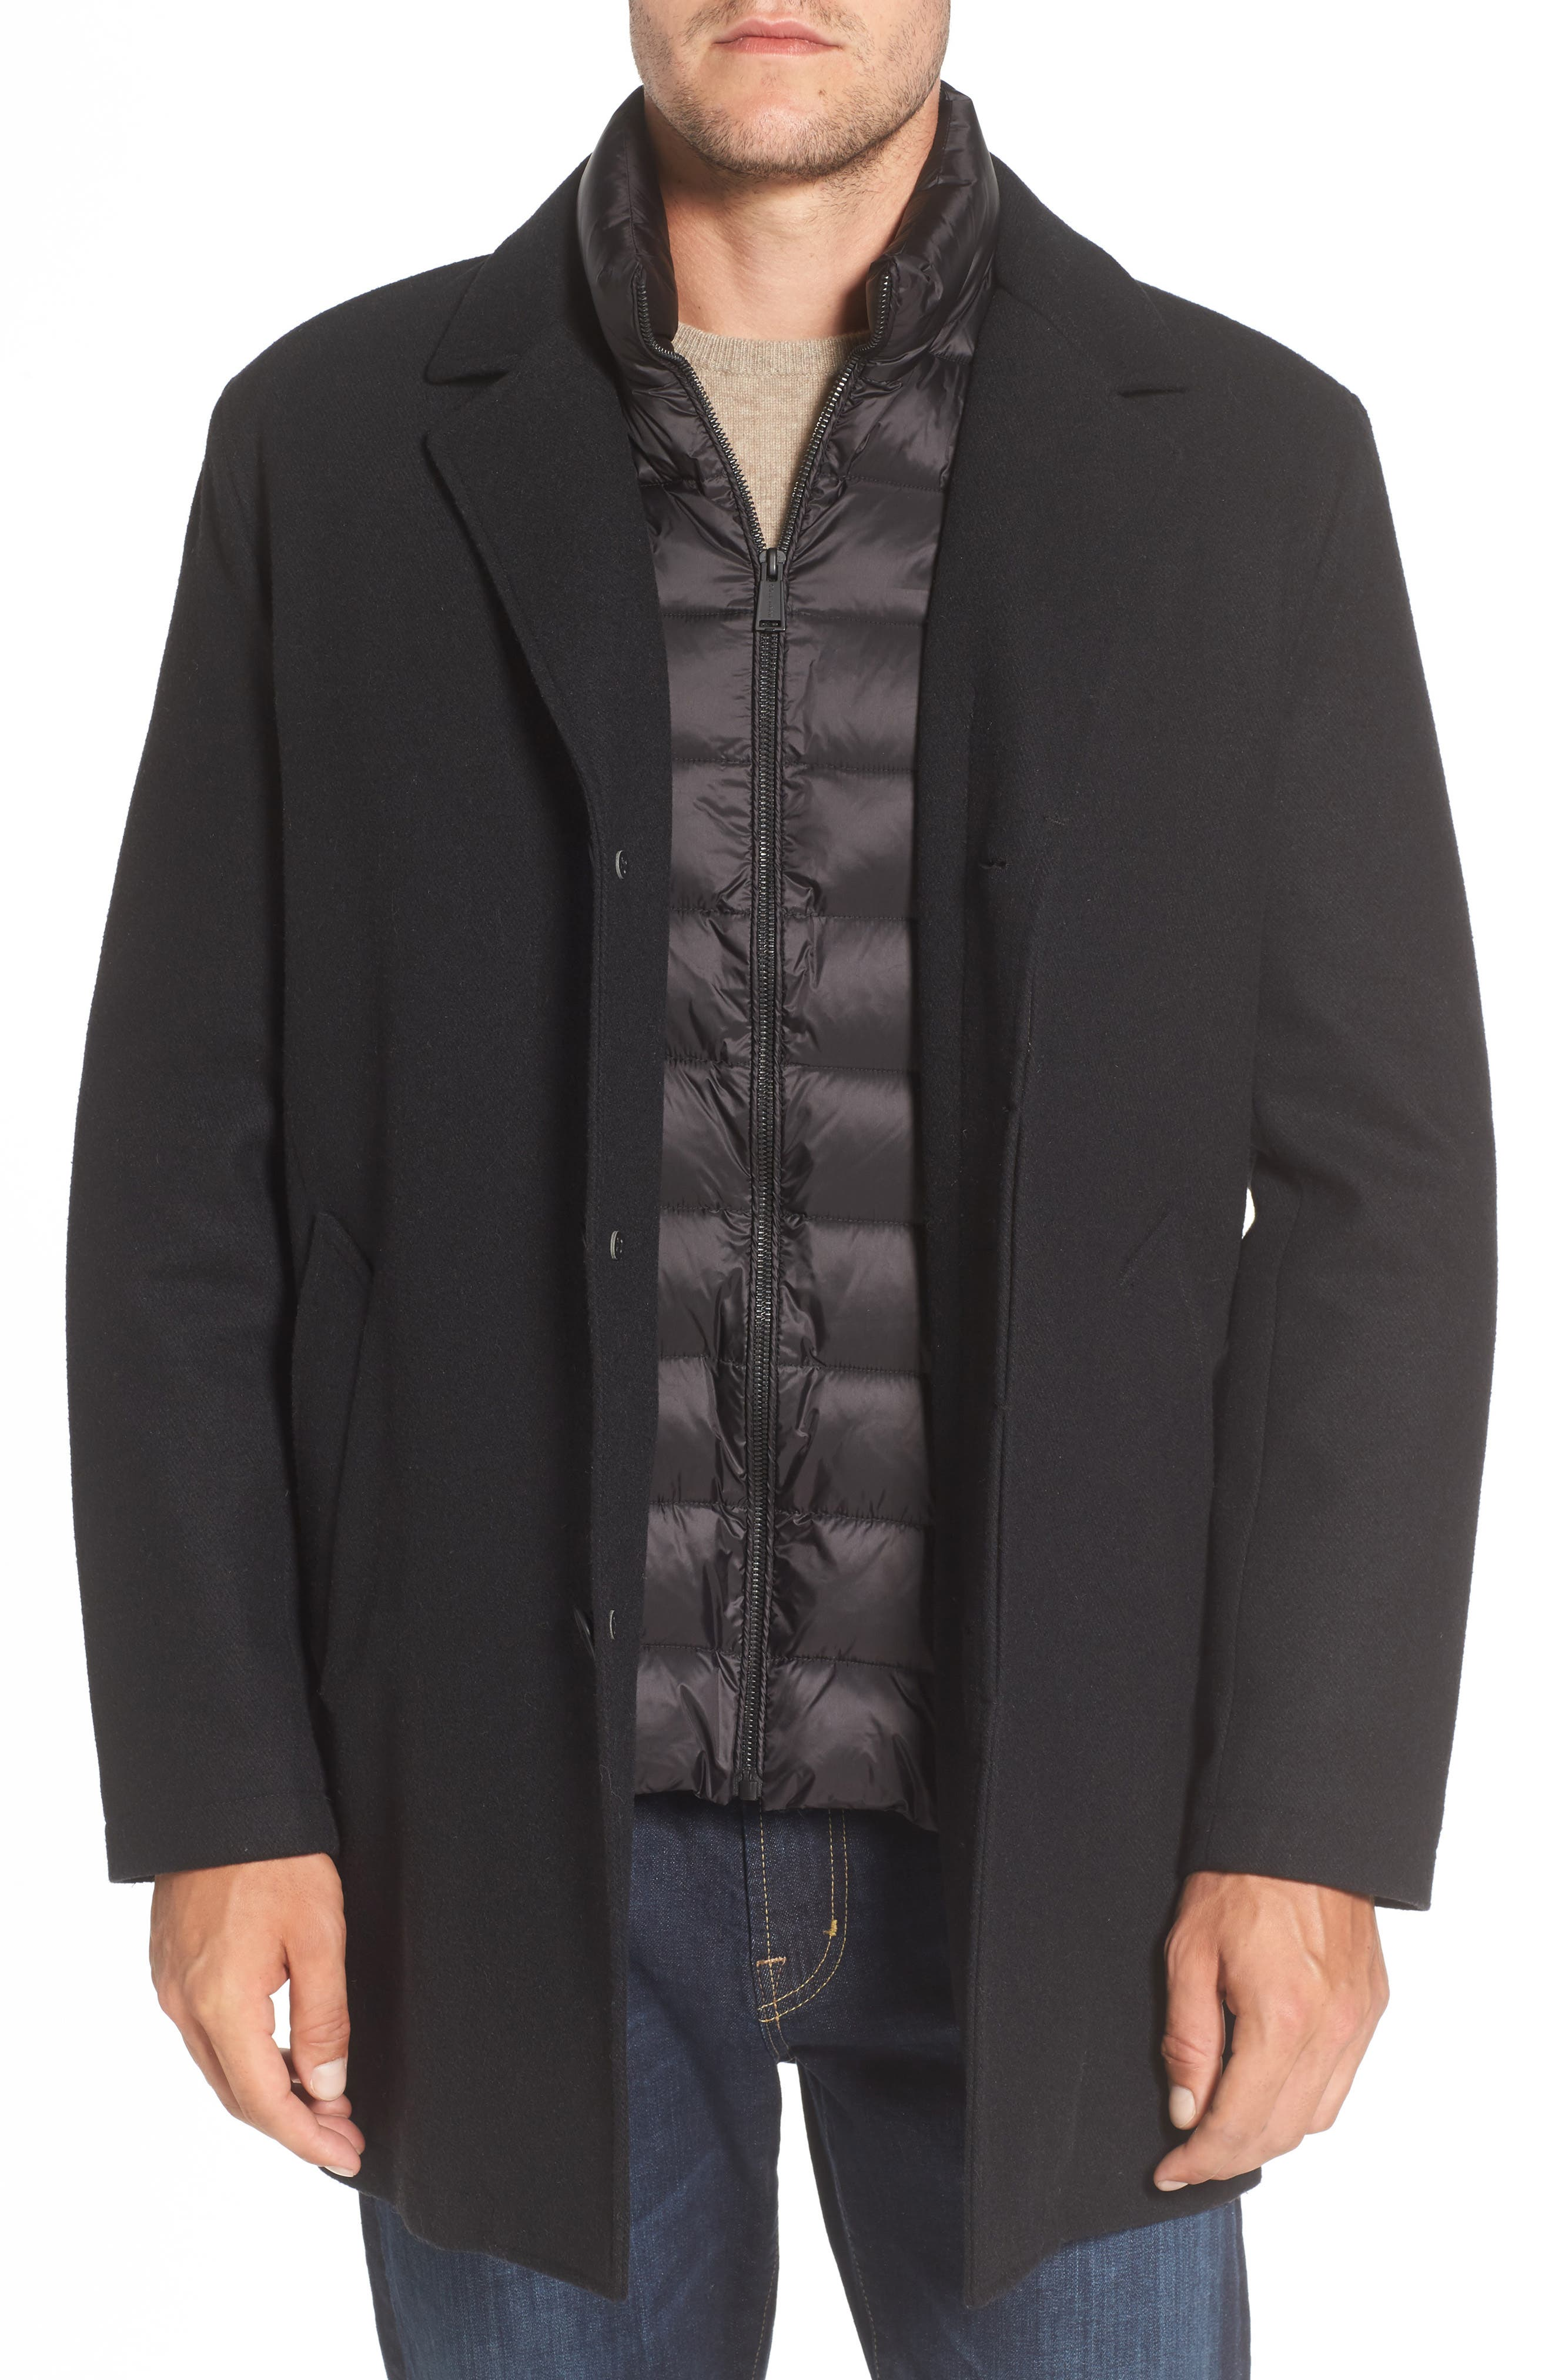 Cole Haan Water Repellent Jacket with Inset Bib & Faux Fur Lining